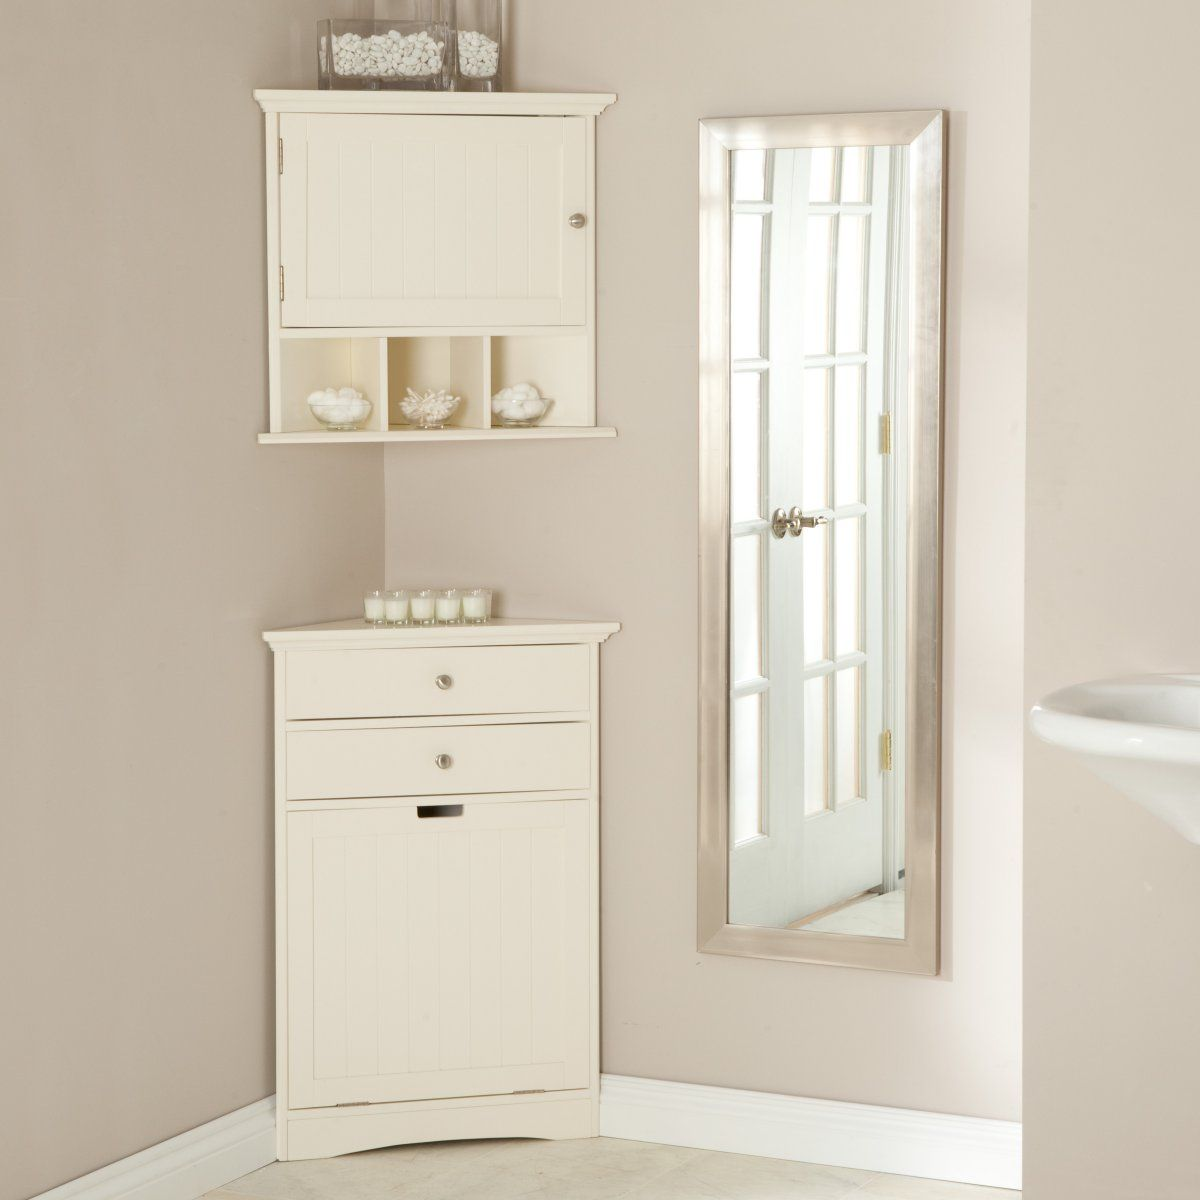 corner wall cabinets & hamper - to save space in small bathroom ...